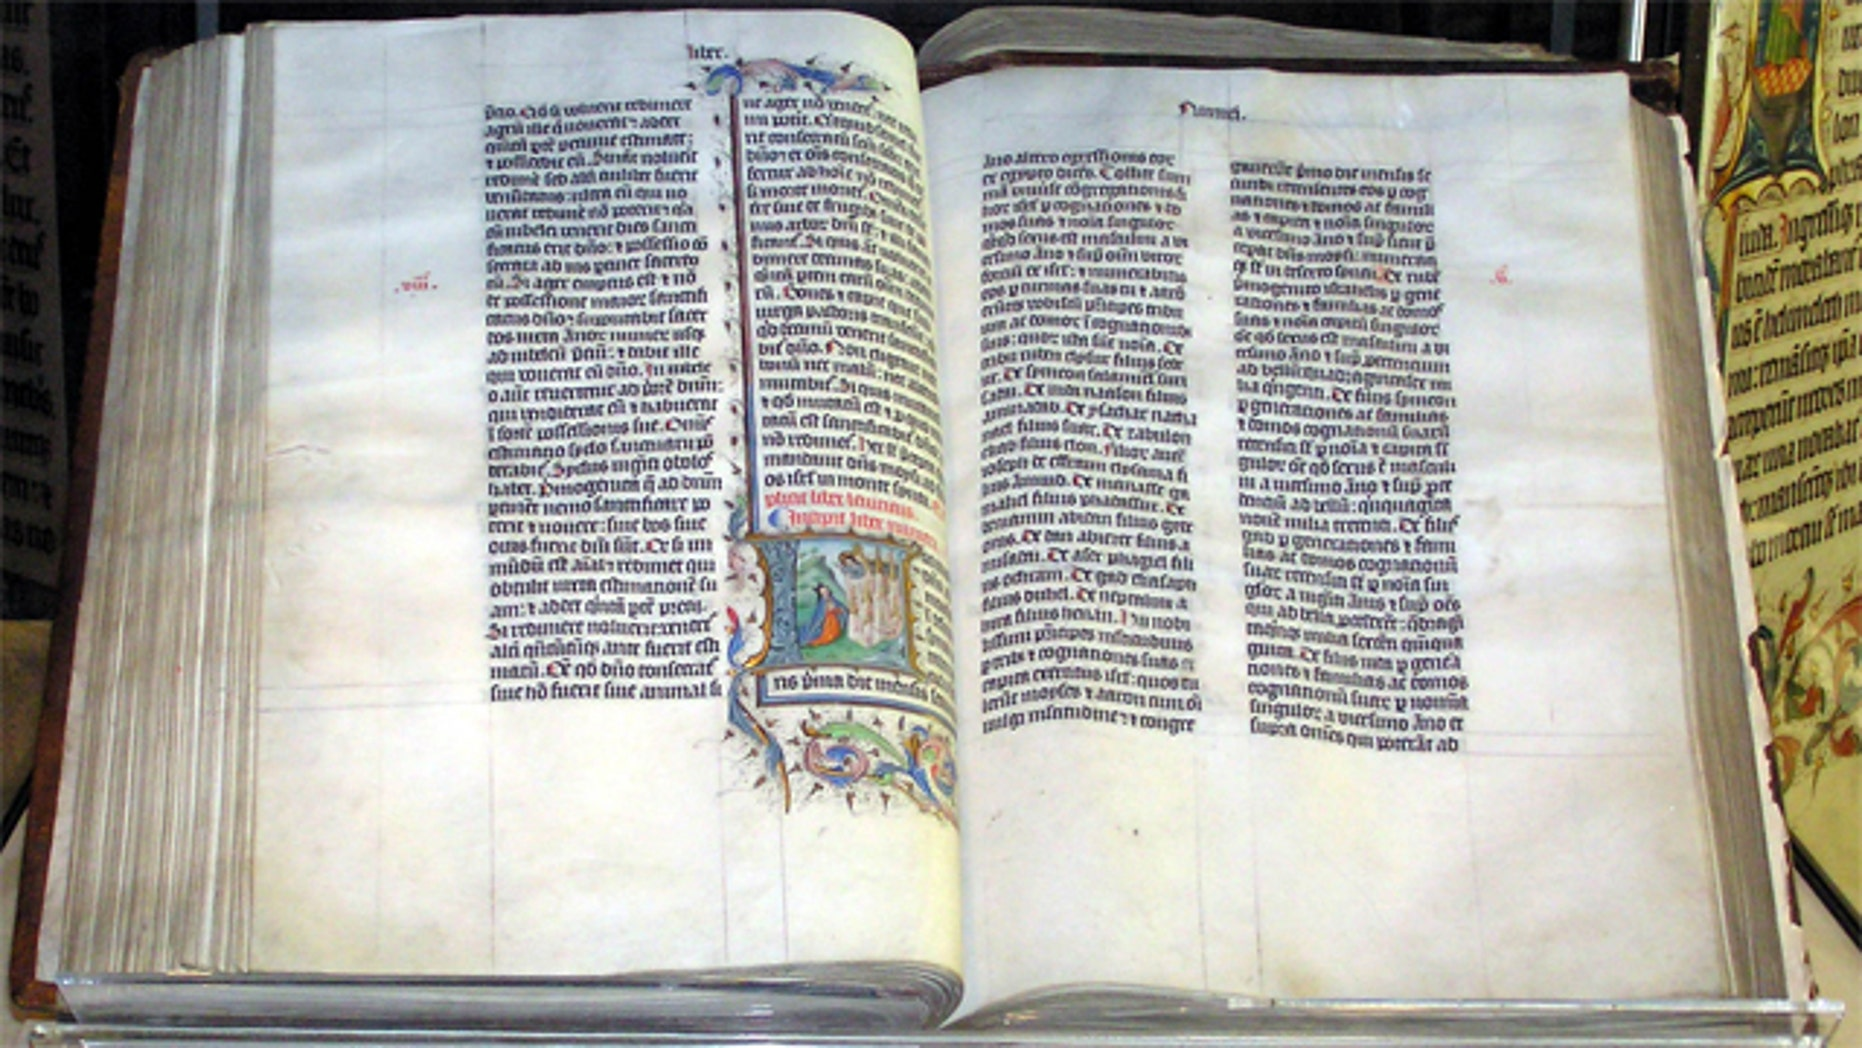 A Bible handwritten in Latin, on display in Malmesbury Abbey, Wiltshire, England.